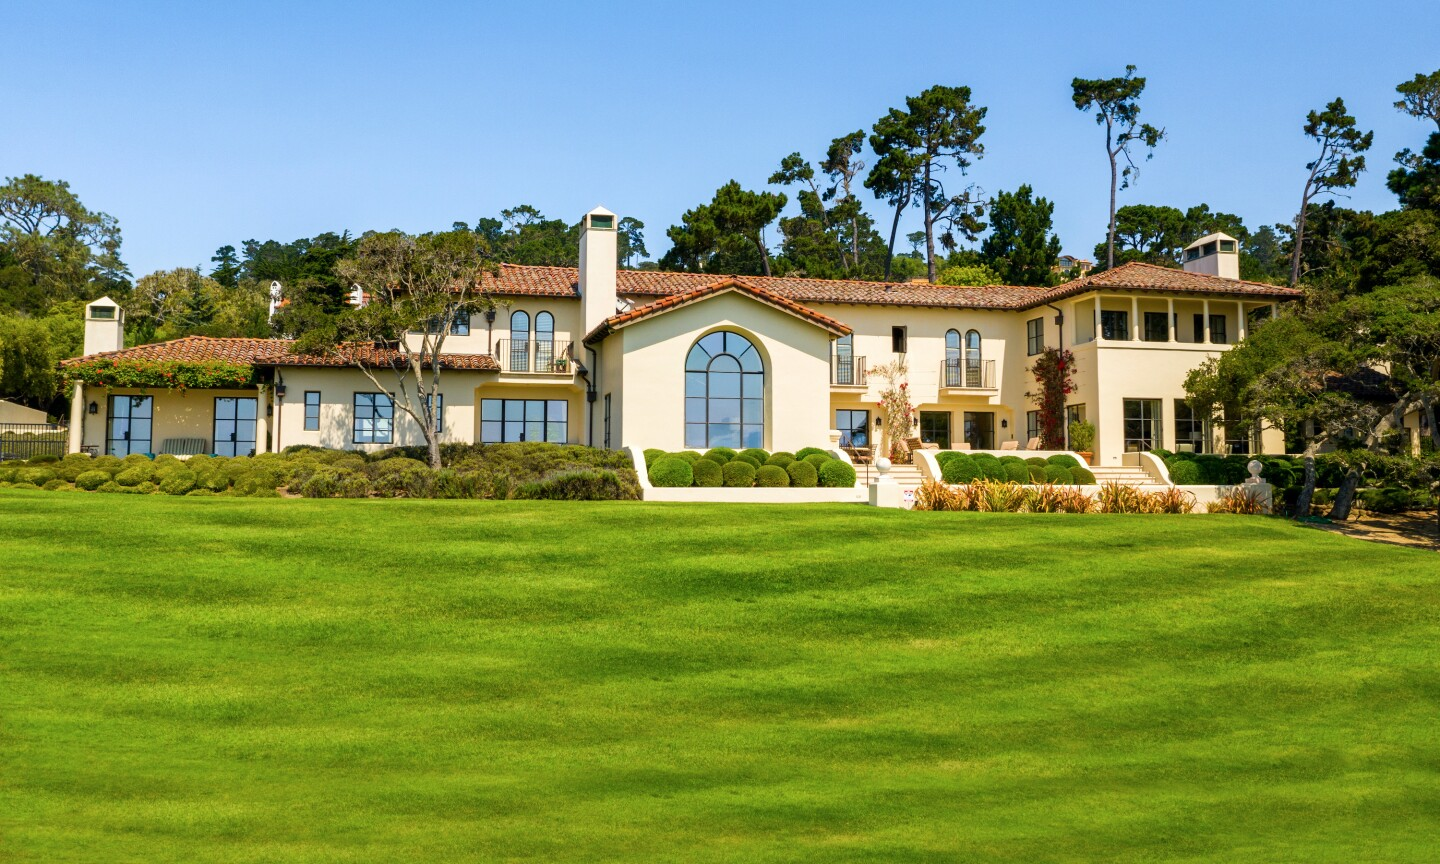 The 10,000-square-foot Mediterranean mansion includes a putting green, chipping area and golf simulation room.